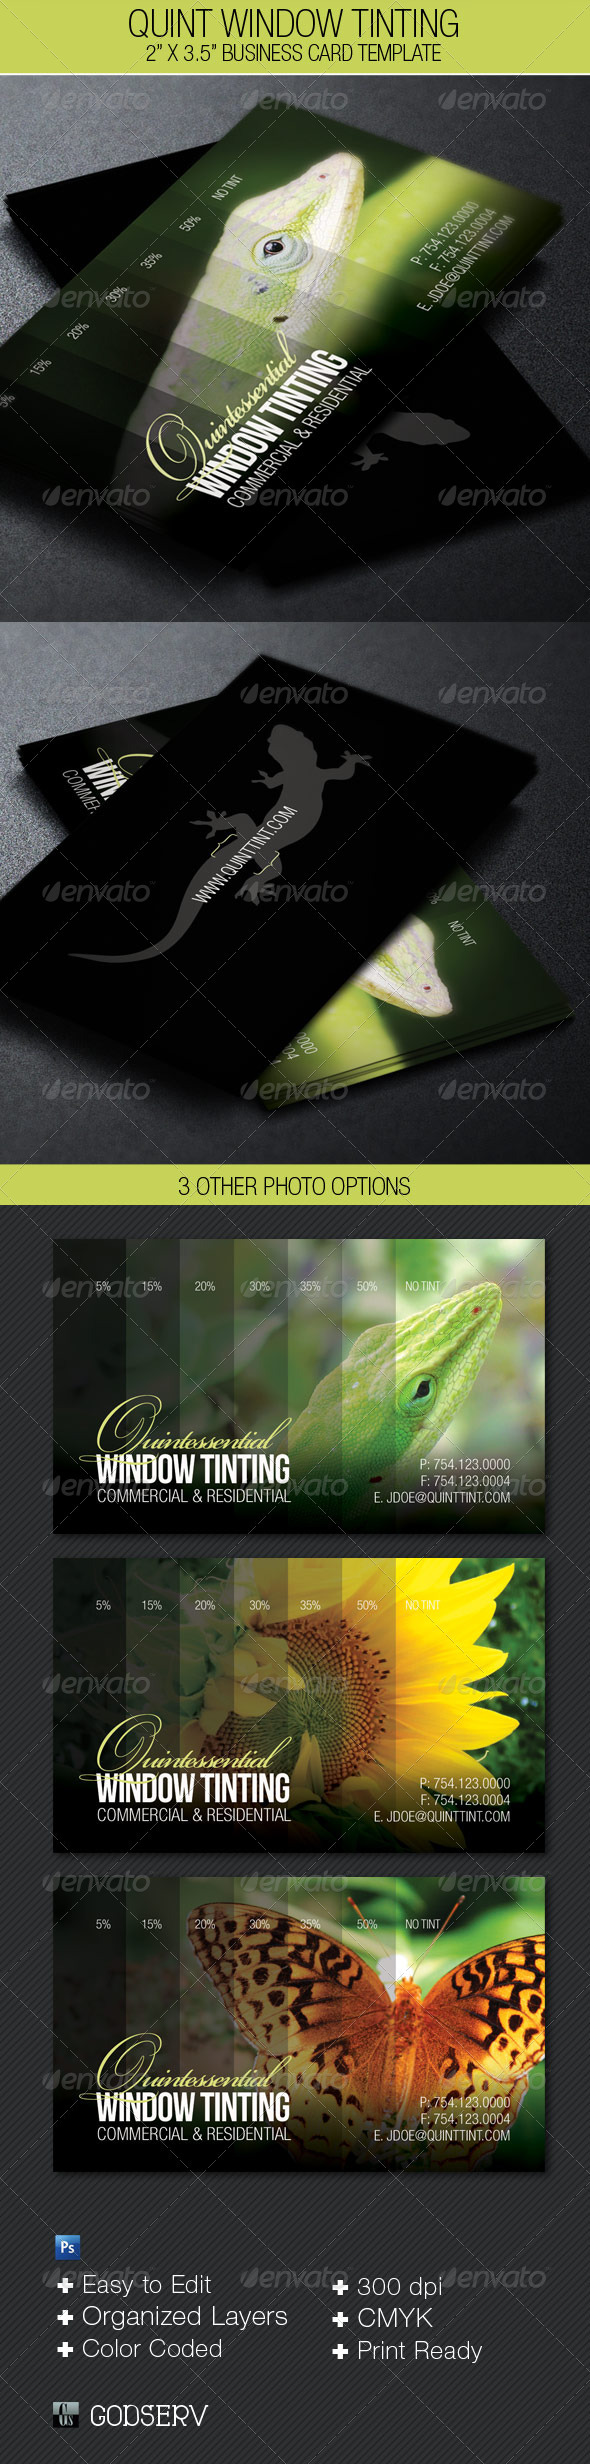 GraphicRiver Quint Window Tinting Business Card Template 3890897